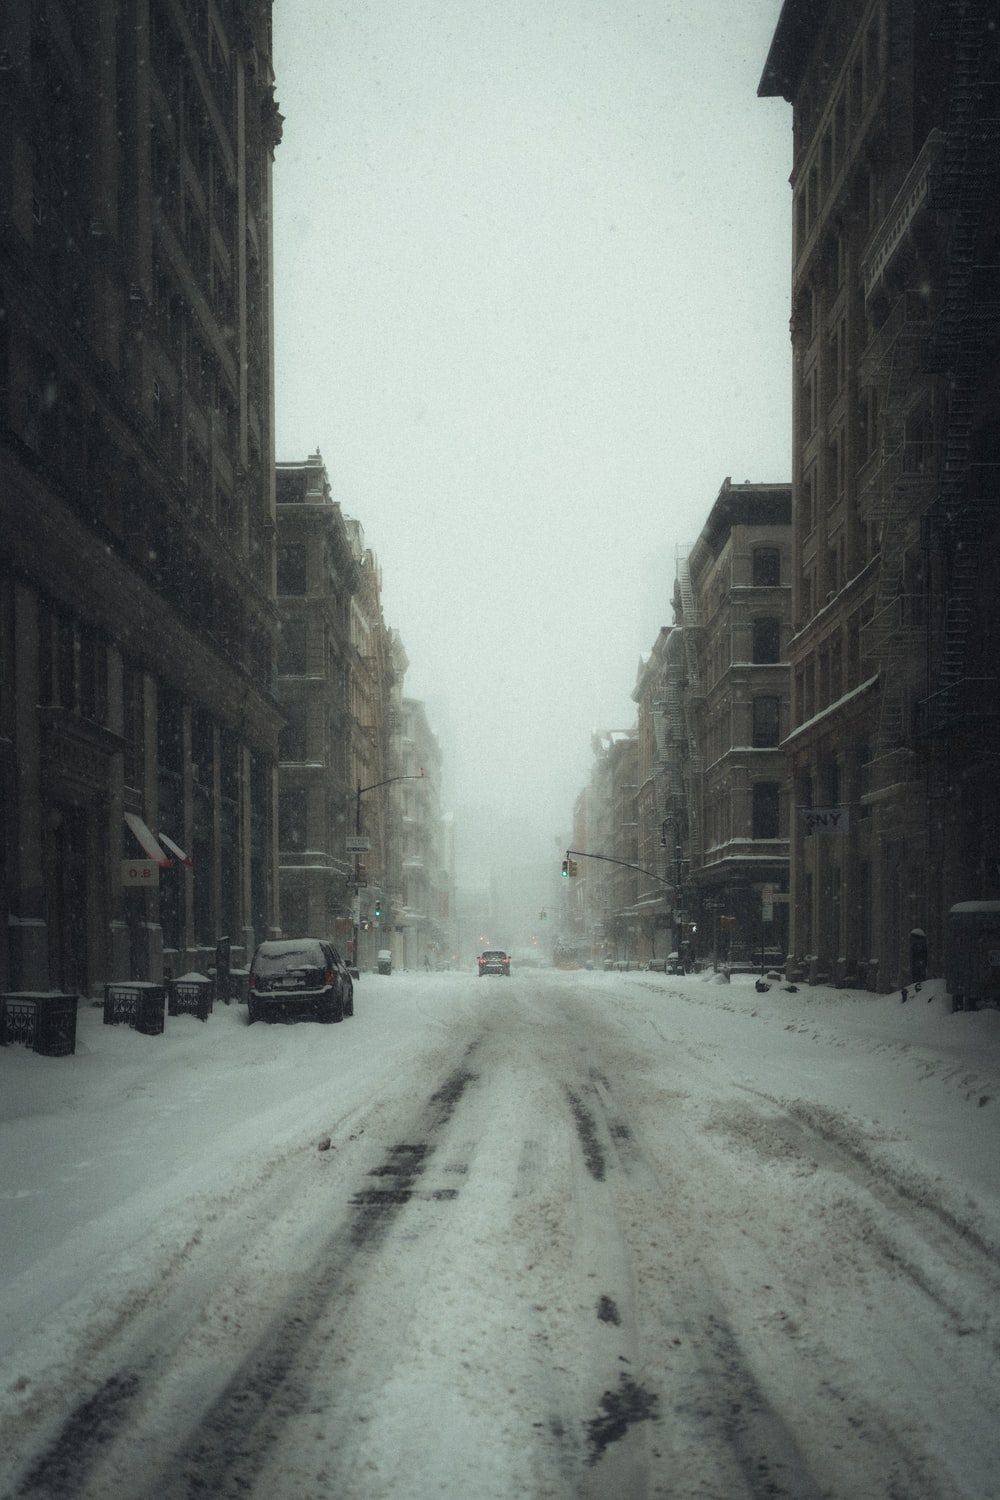 snow covered road between buildings during daytime